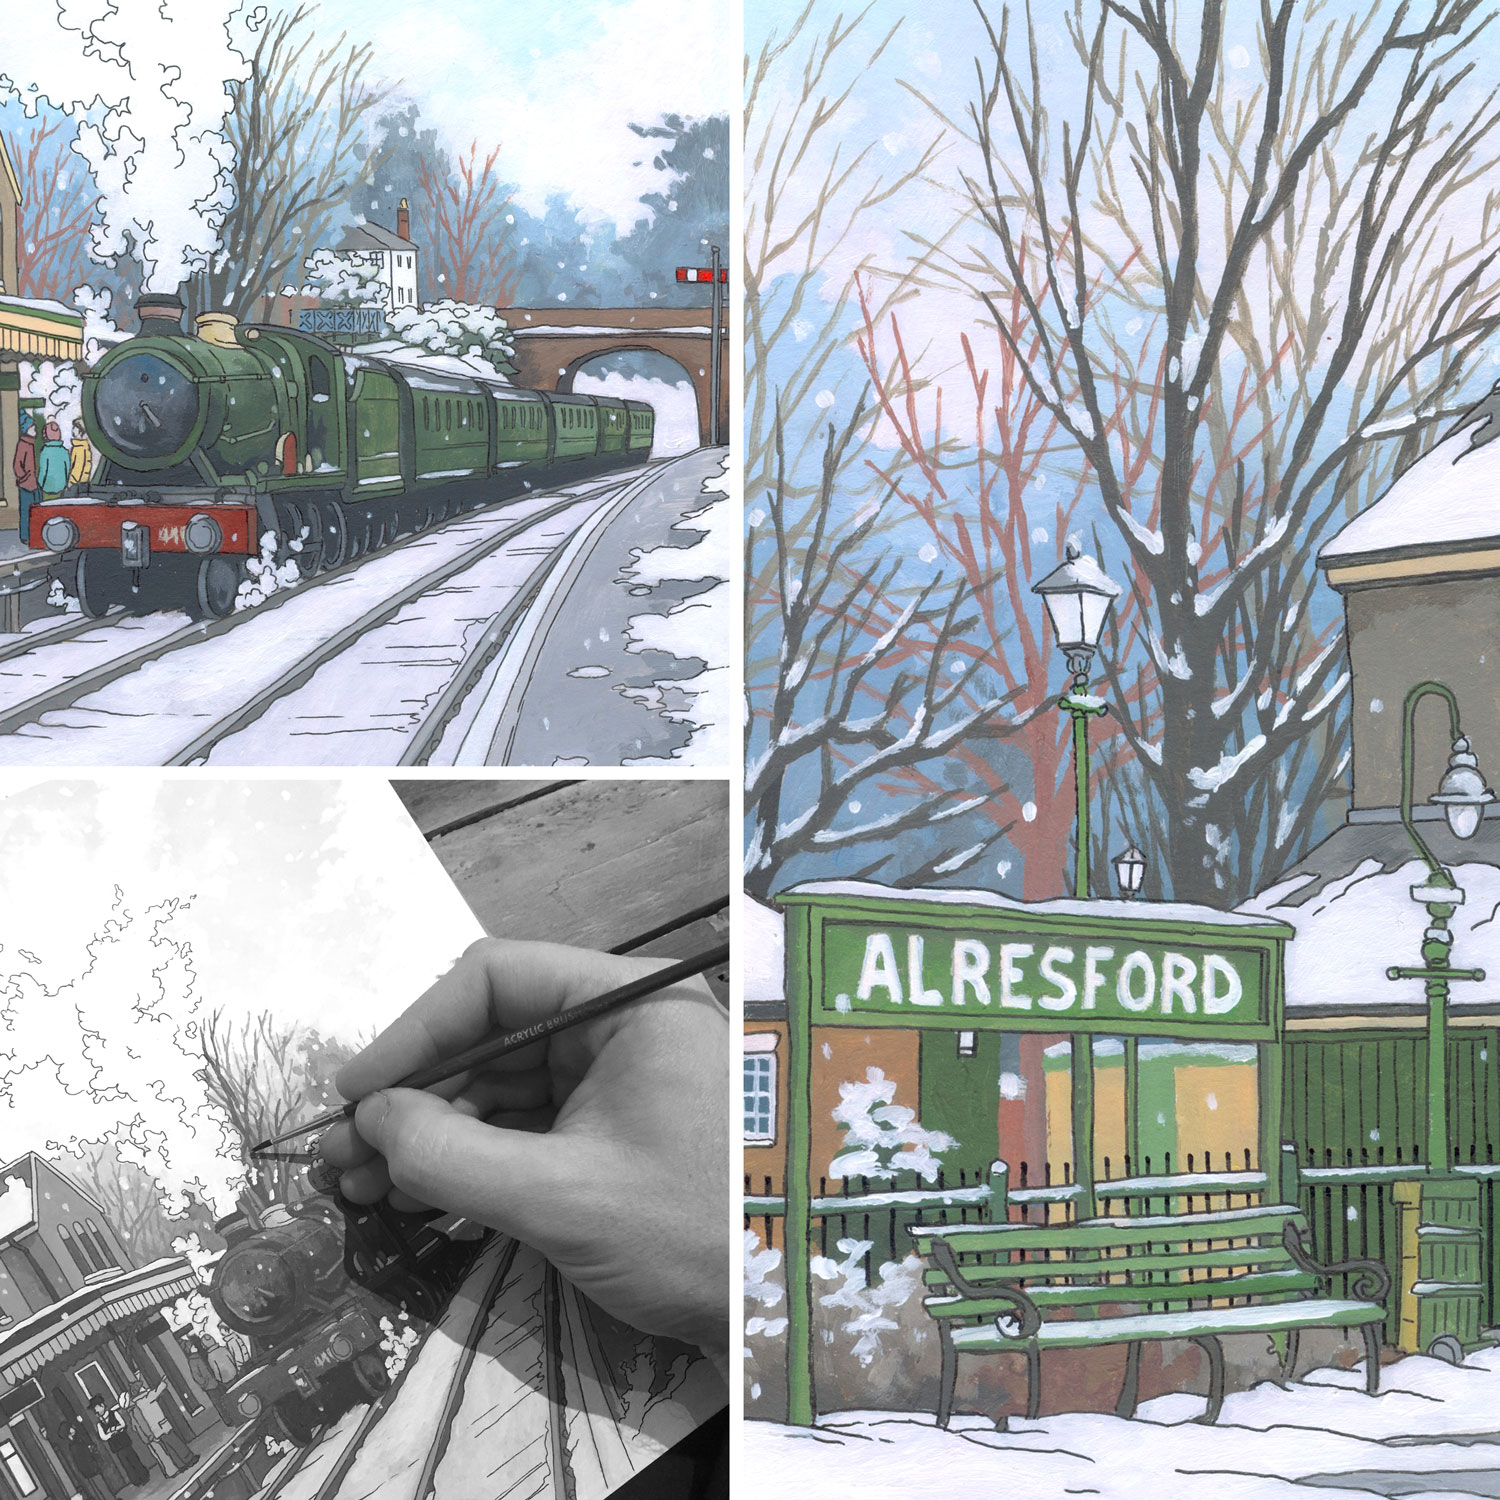 Alresford Steam Engine - Illustration by Jonathan Chapman